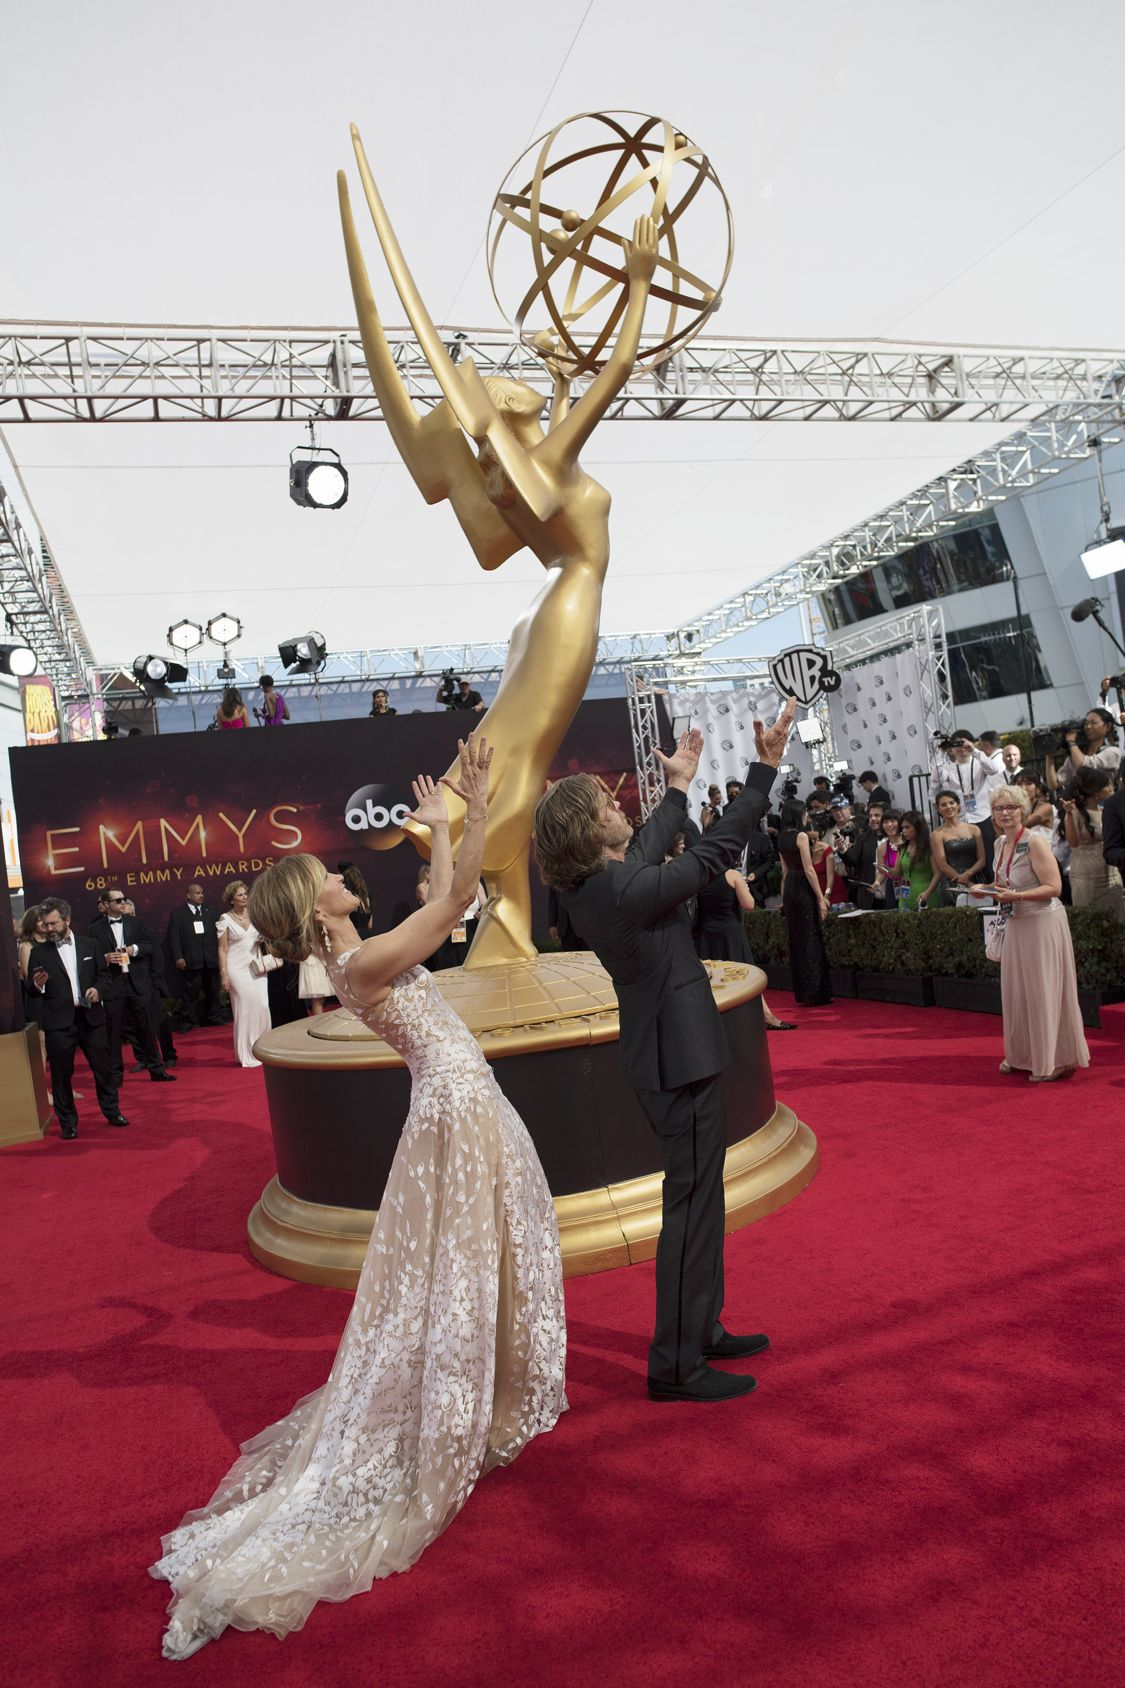 """THE 68TH EMMY(r) AWARDS - """"The 68th Emmy Awards"""" broadcasts live from The Microsoft Theater in Los Angeles, Sunday, September 18 (7:00-11:00 p.m. EDT/4:00-8:00 p.m. PDT), on ABC and is hosted by Jimmy Kimmel. (ABC/Image Group LA) FELICITY HUFFMAN, WILLIAM H. MACY"""